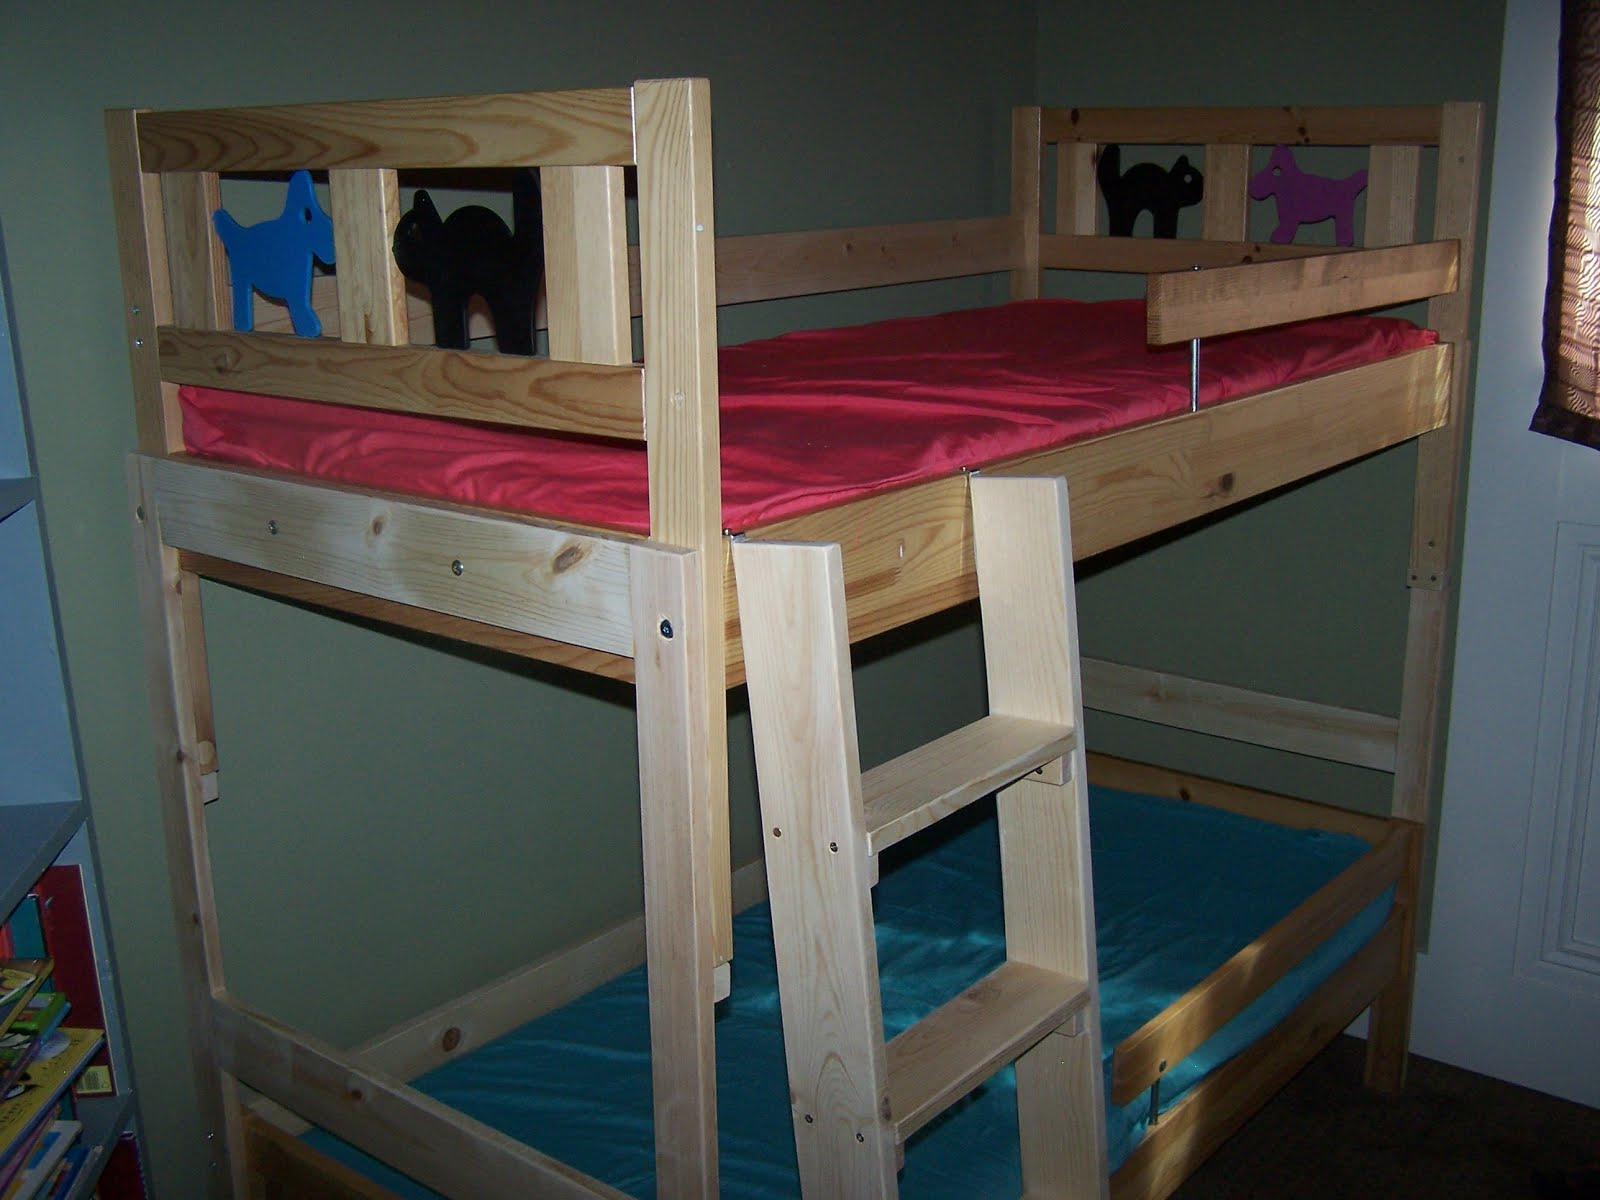 Ikea Malm Frisiertisch Aufbau ~ Ikea Toddler Bunk Beds ~ Get Home Decorating